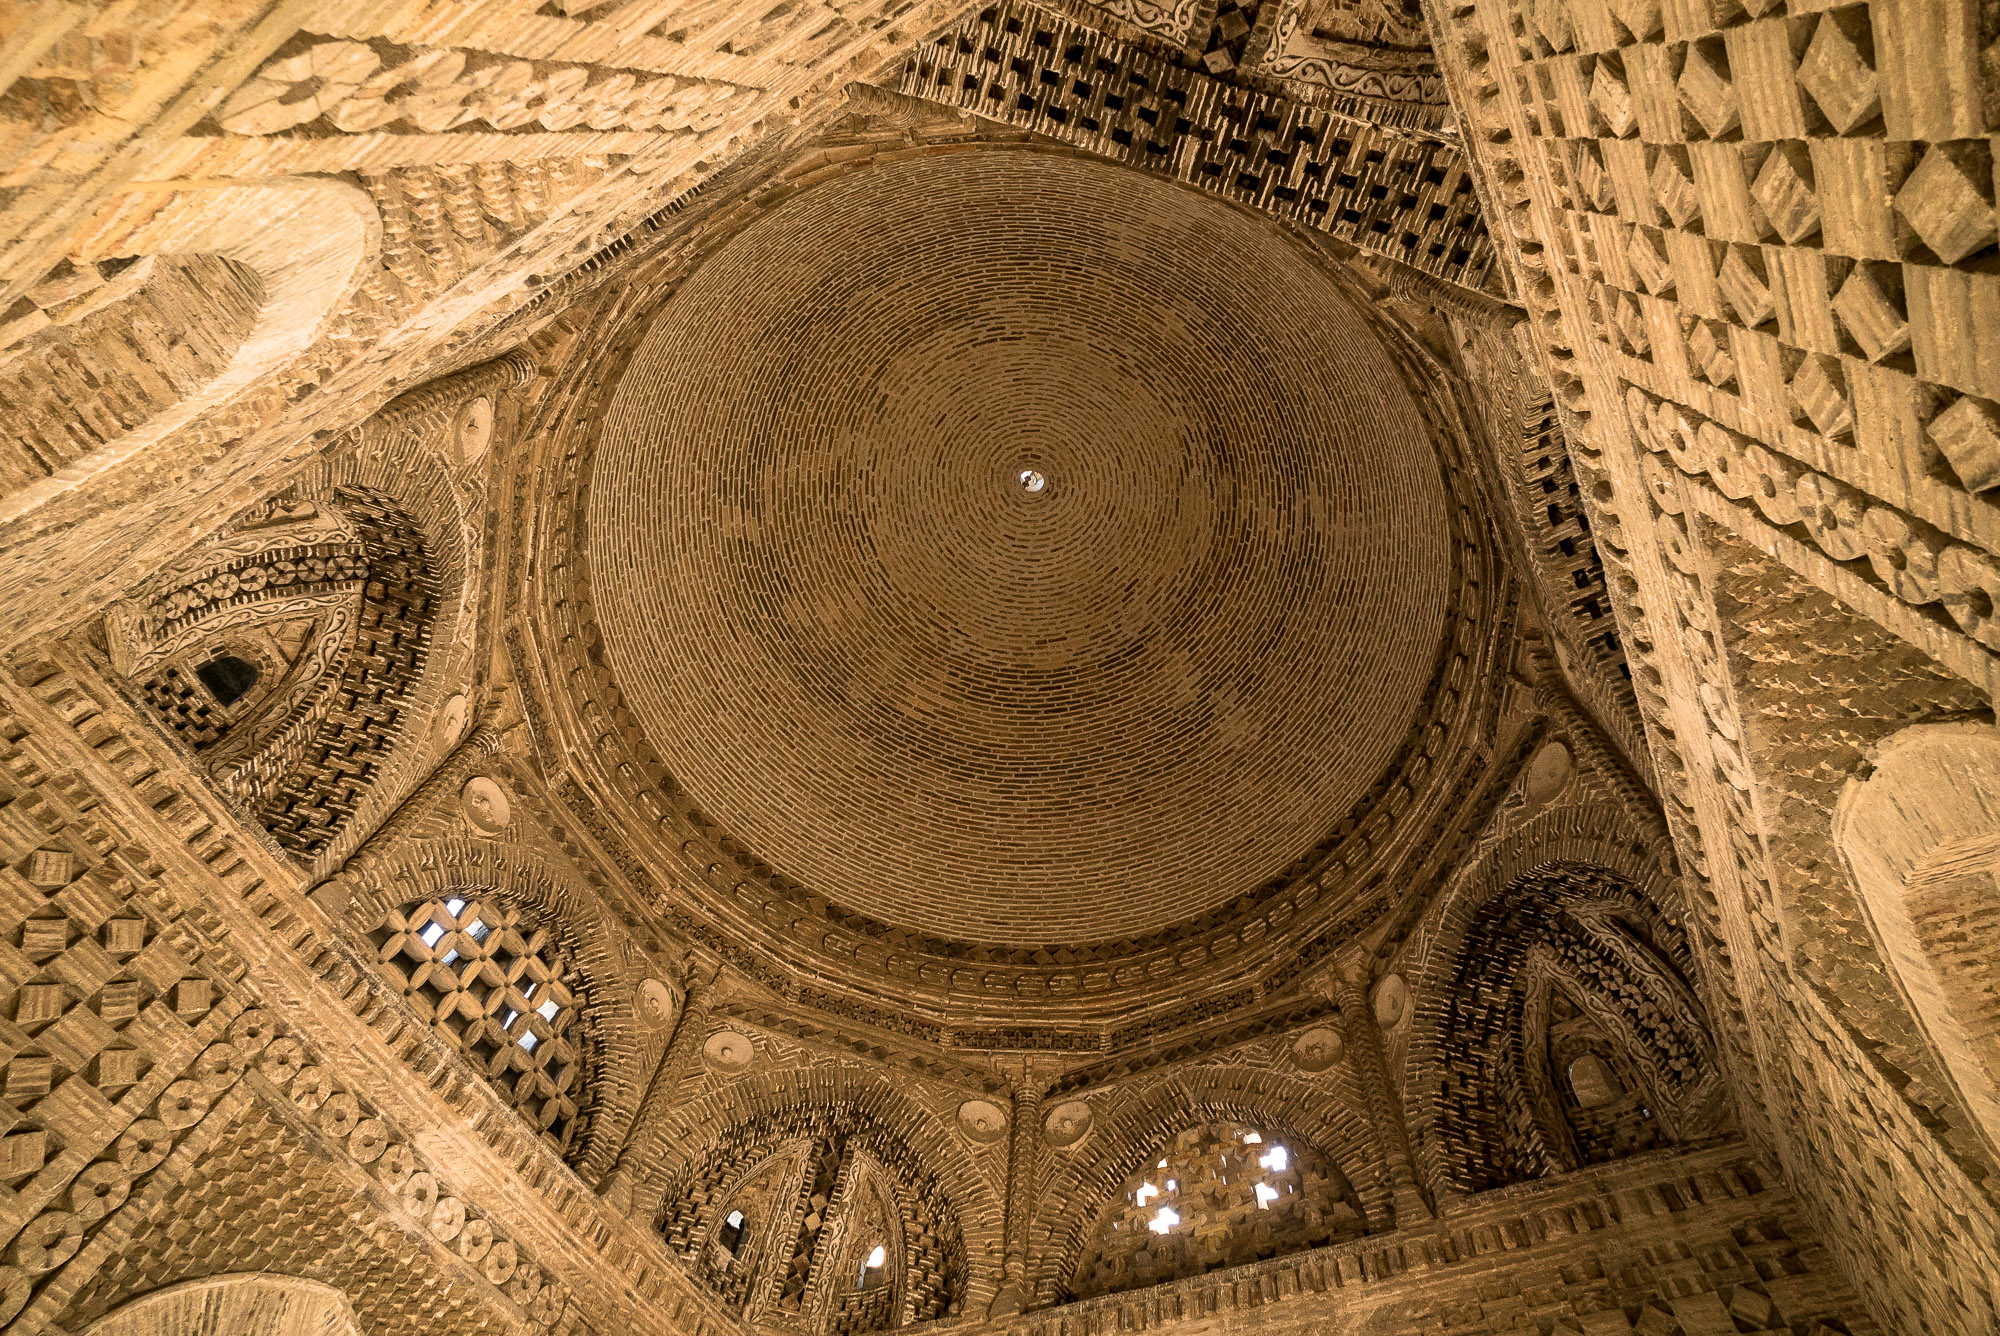 ceiling of the mausoleum